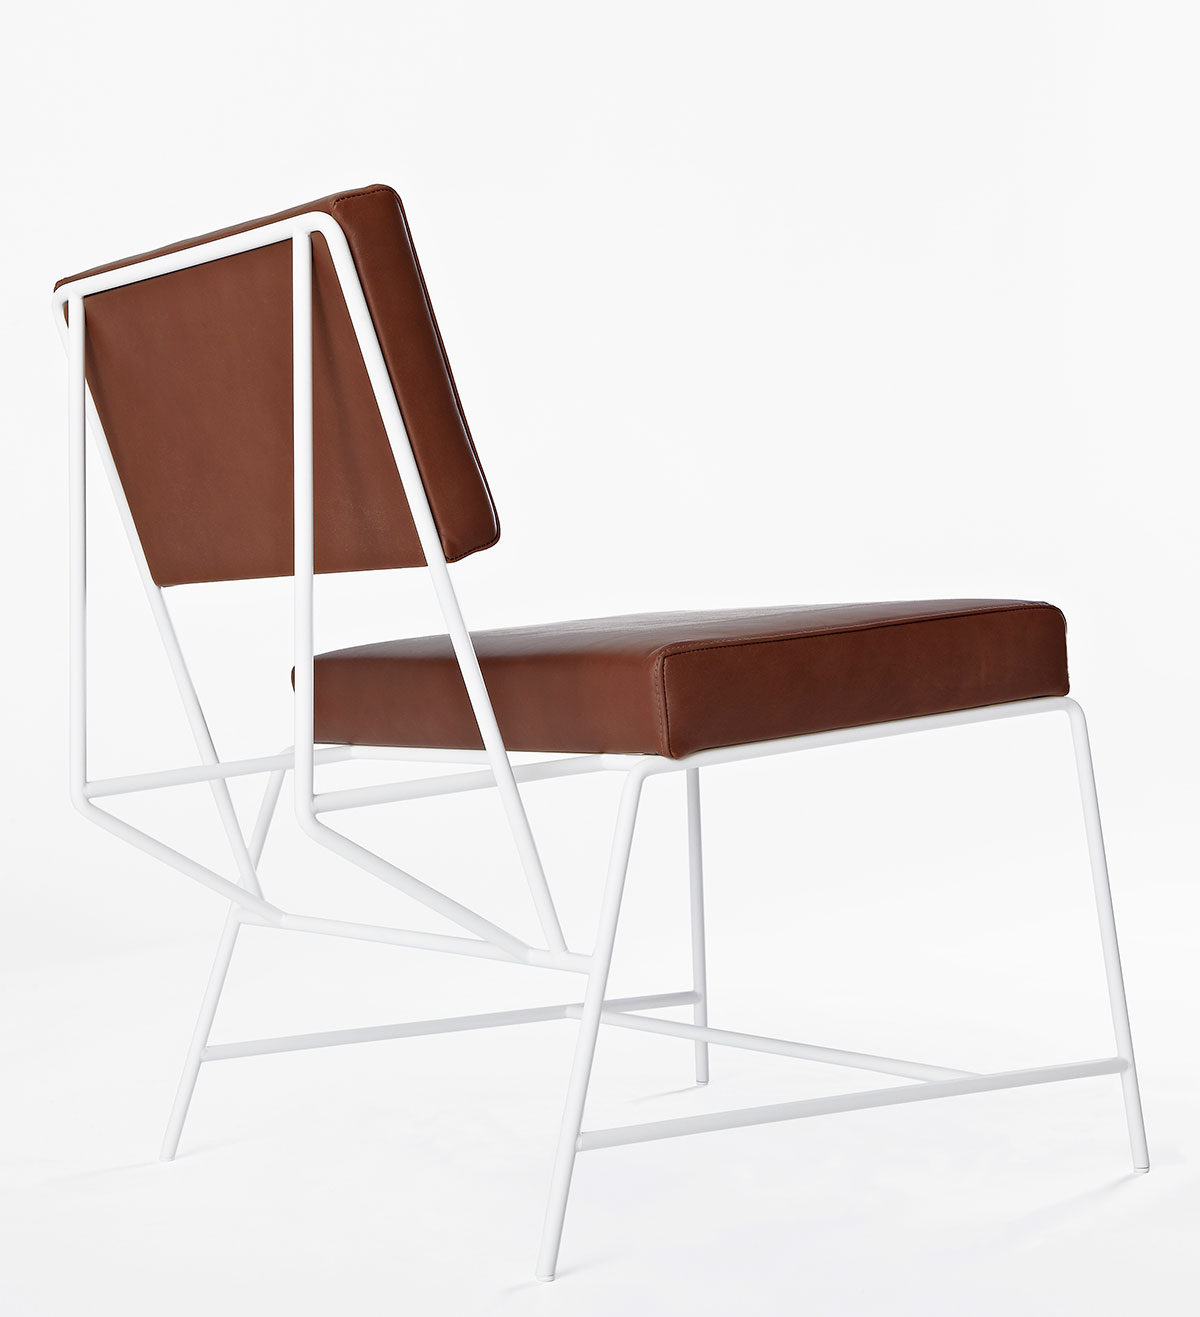 Hensen Chair by New Duivendrecht  | Yellowtrace.